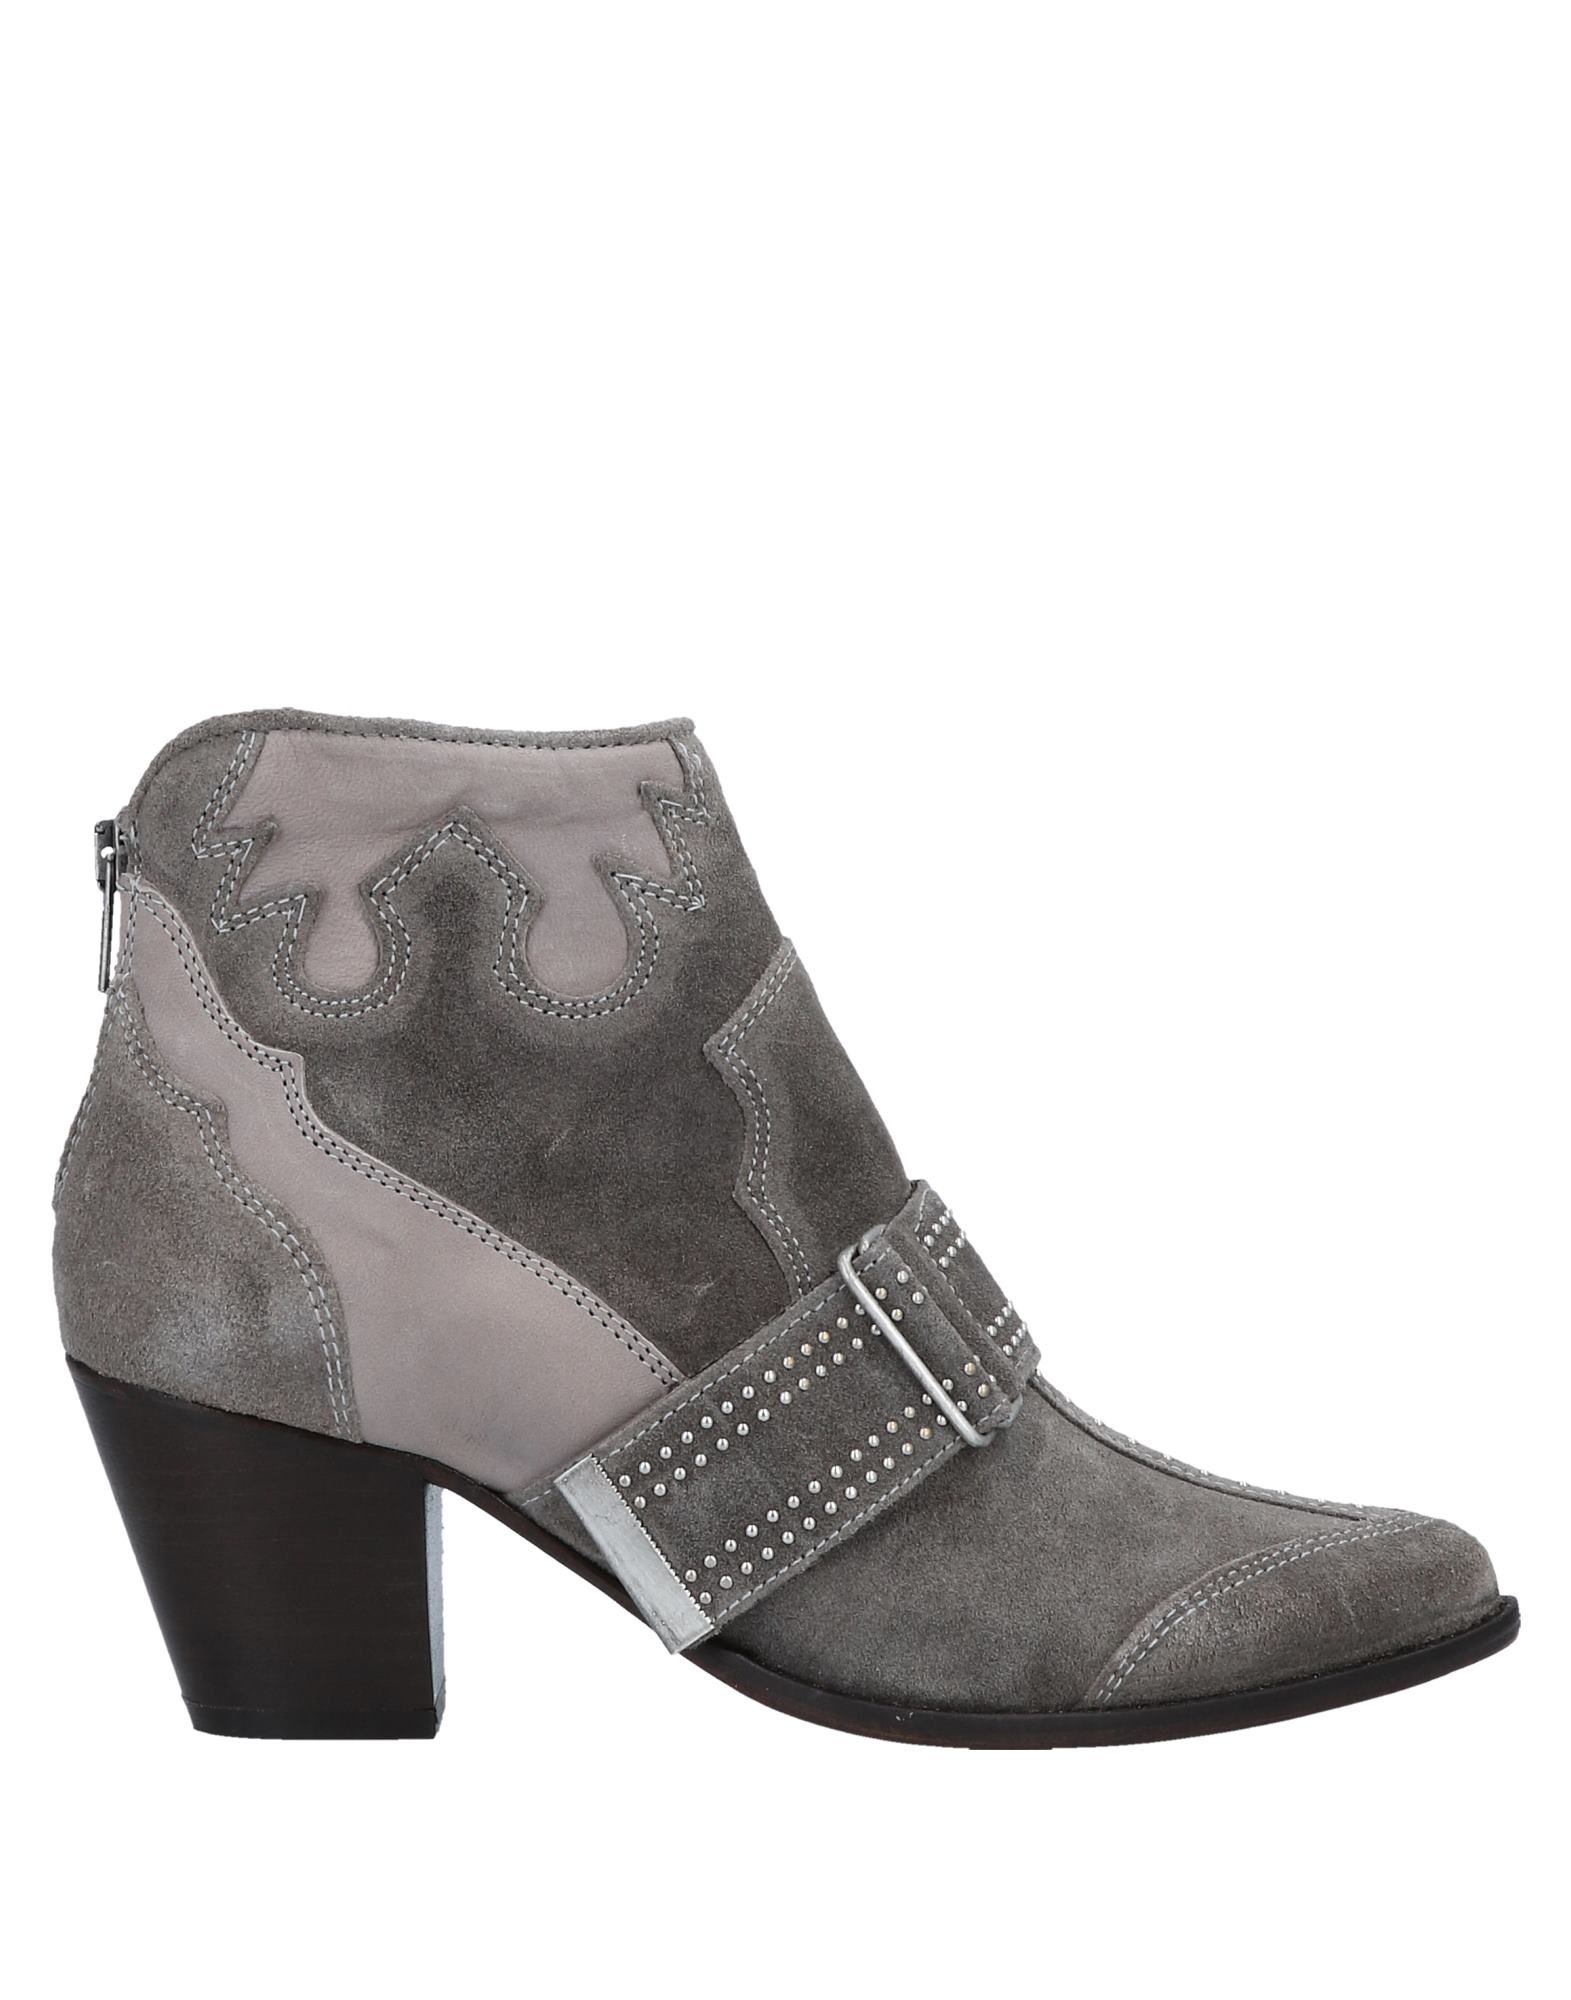 53a7af870 Catarina Martins Martins Martins Ankle Boot - Women Catarina Martins Ankle  Boots online on United Kingdom - 11572193UG 1108f9